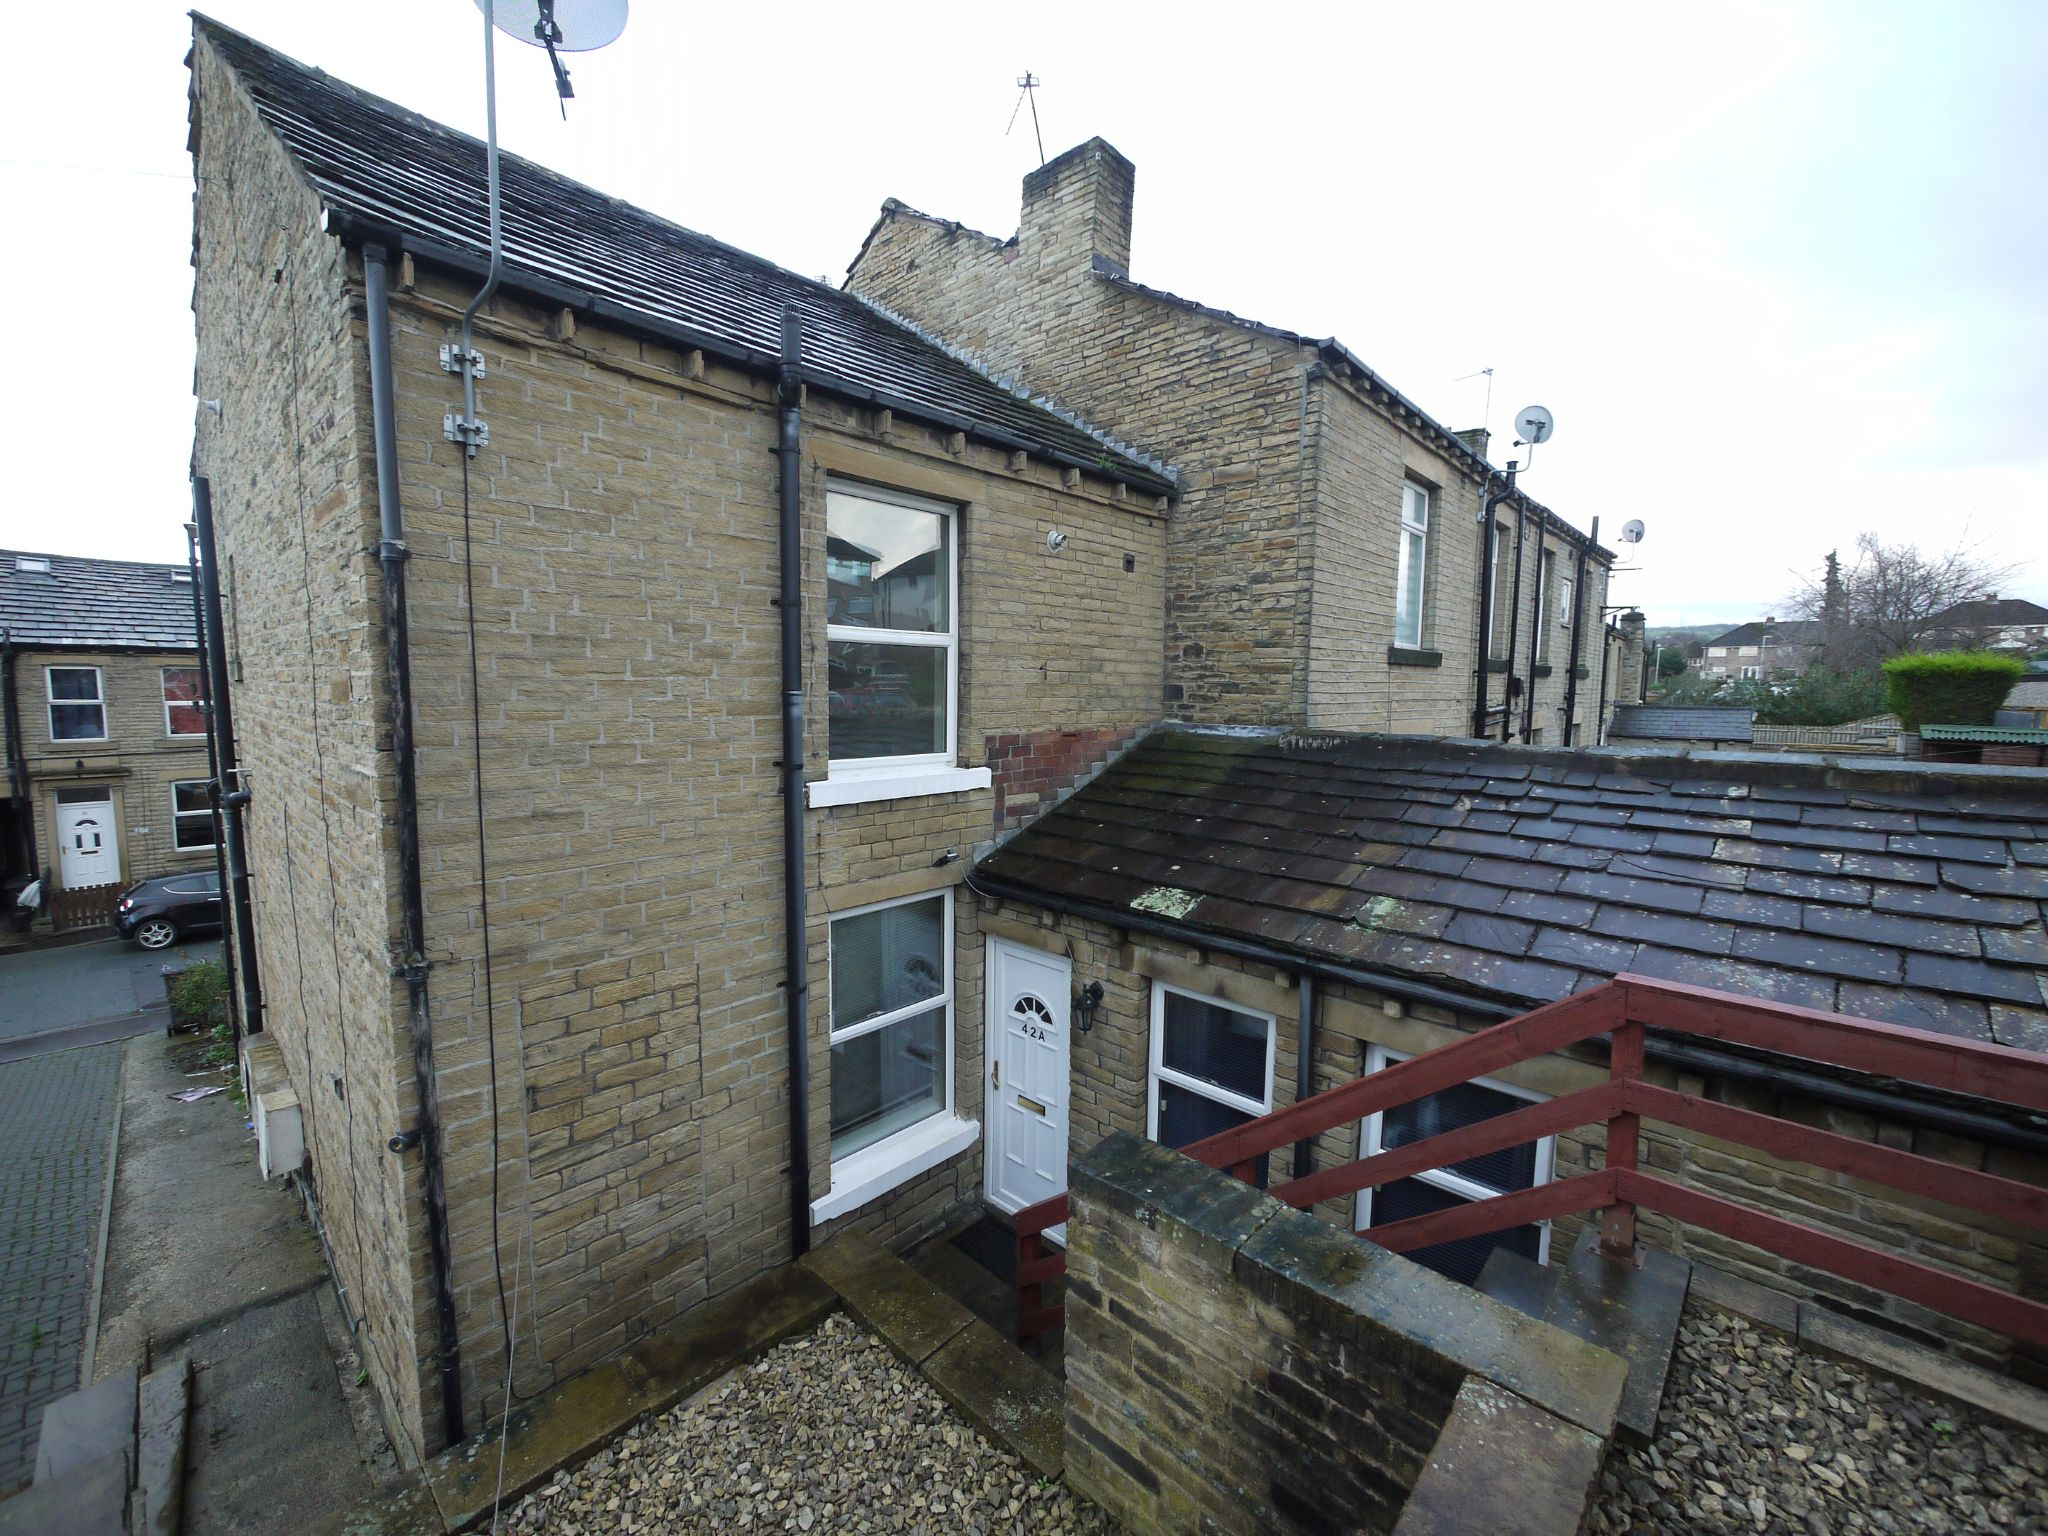 2 bedroom mid terraced house SSTC in Brighouse - Photograph 1.